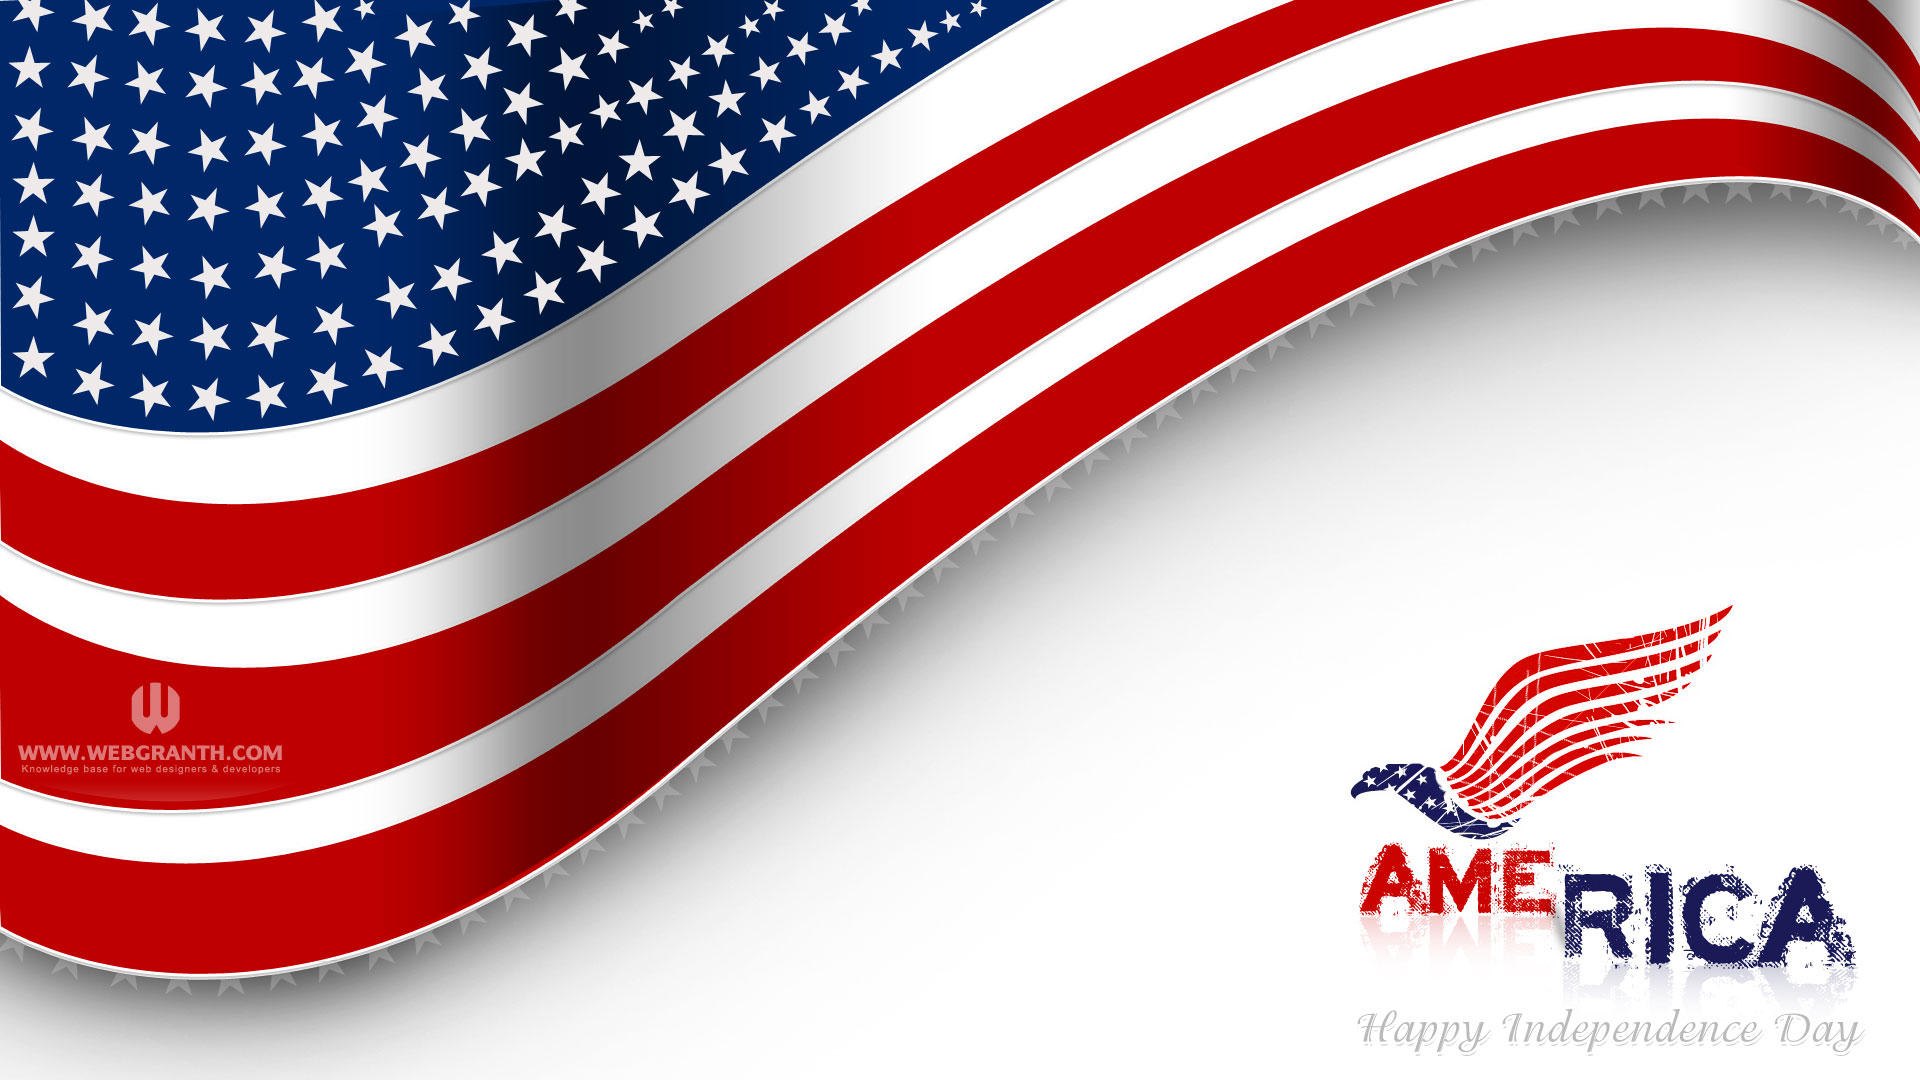 US Independence Day Wallpaper 2013 4 July Independence Day 1920x1080